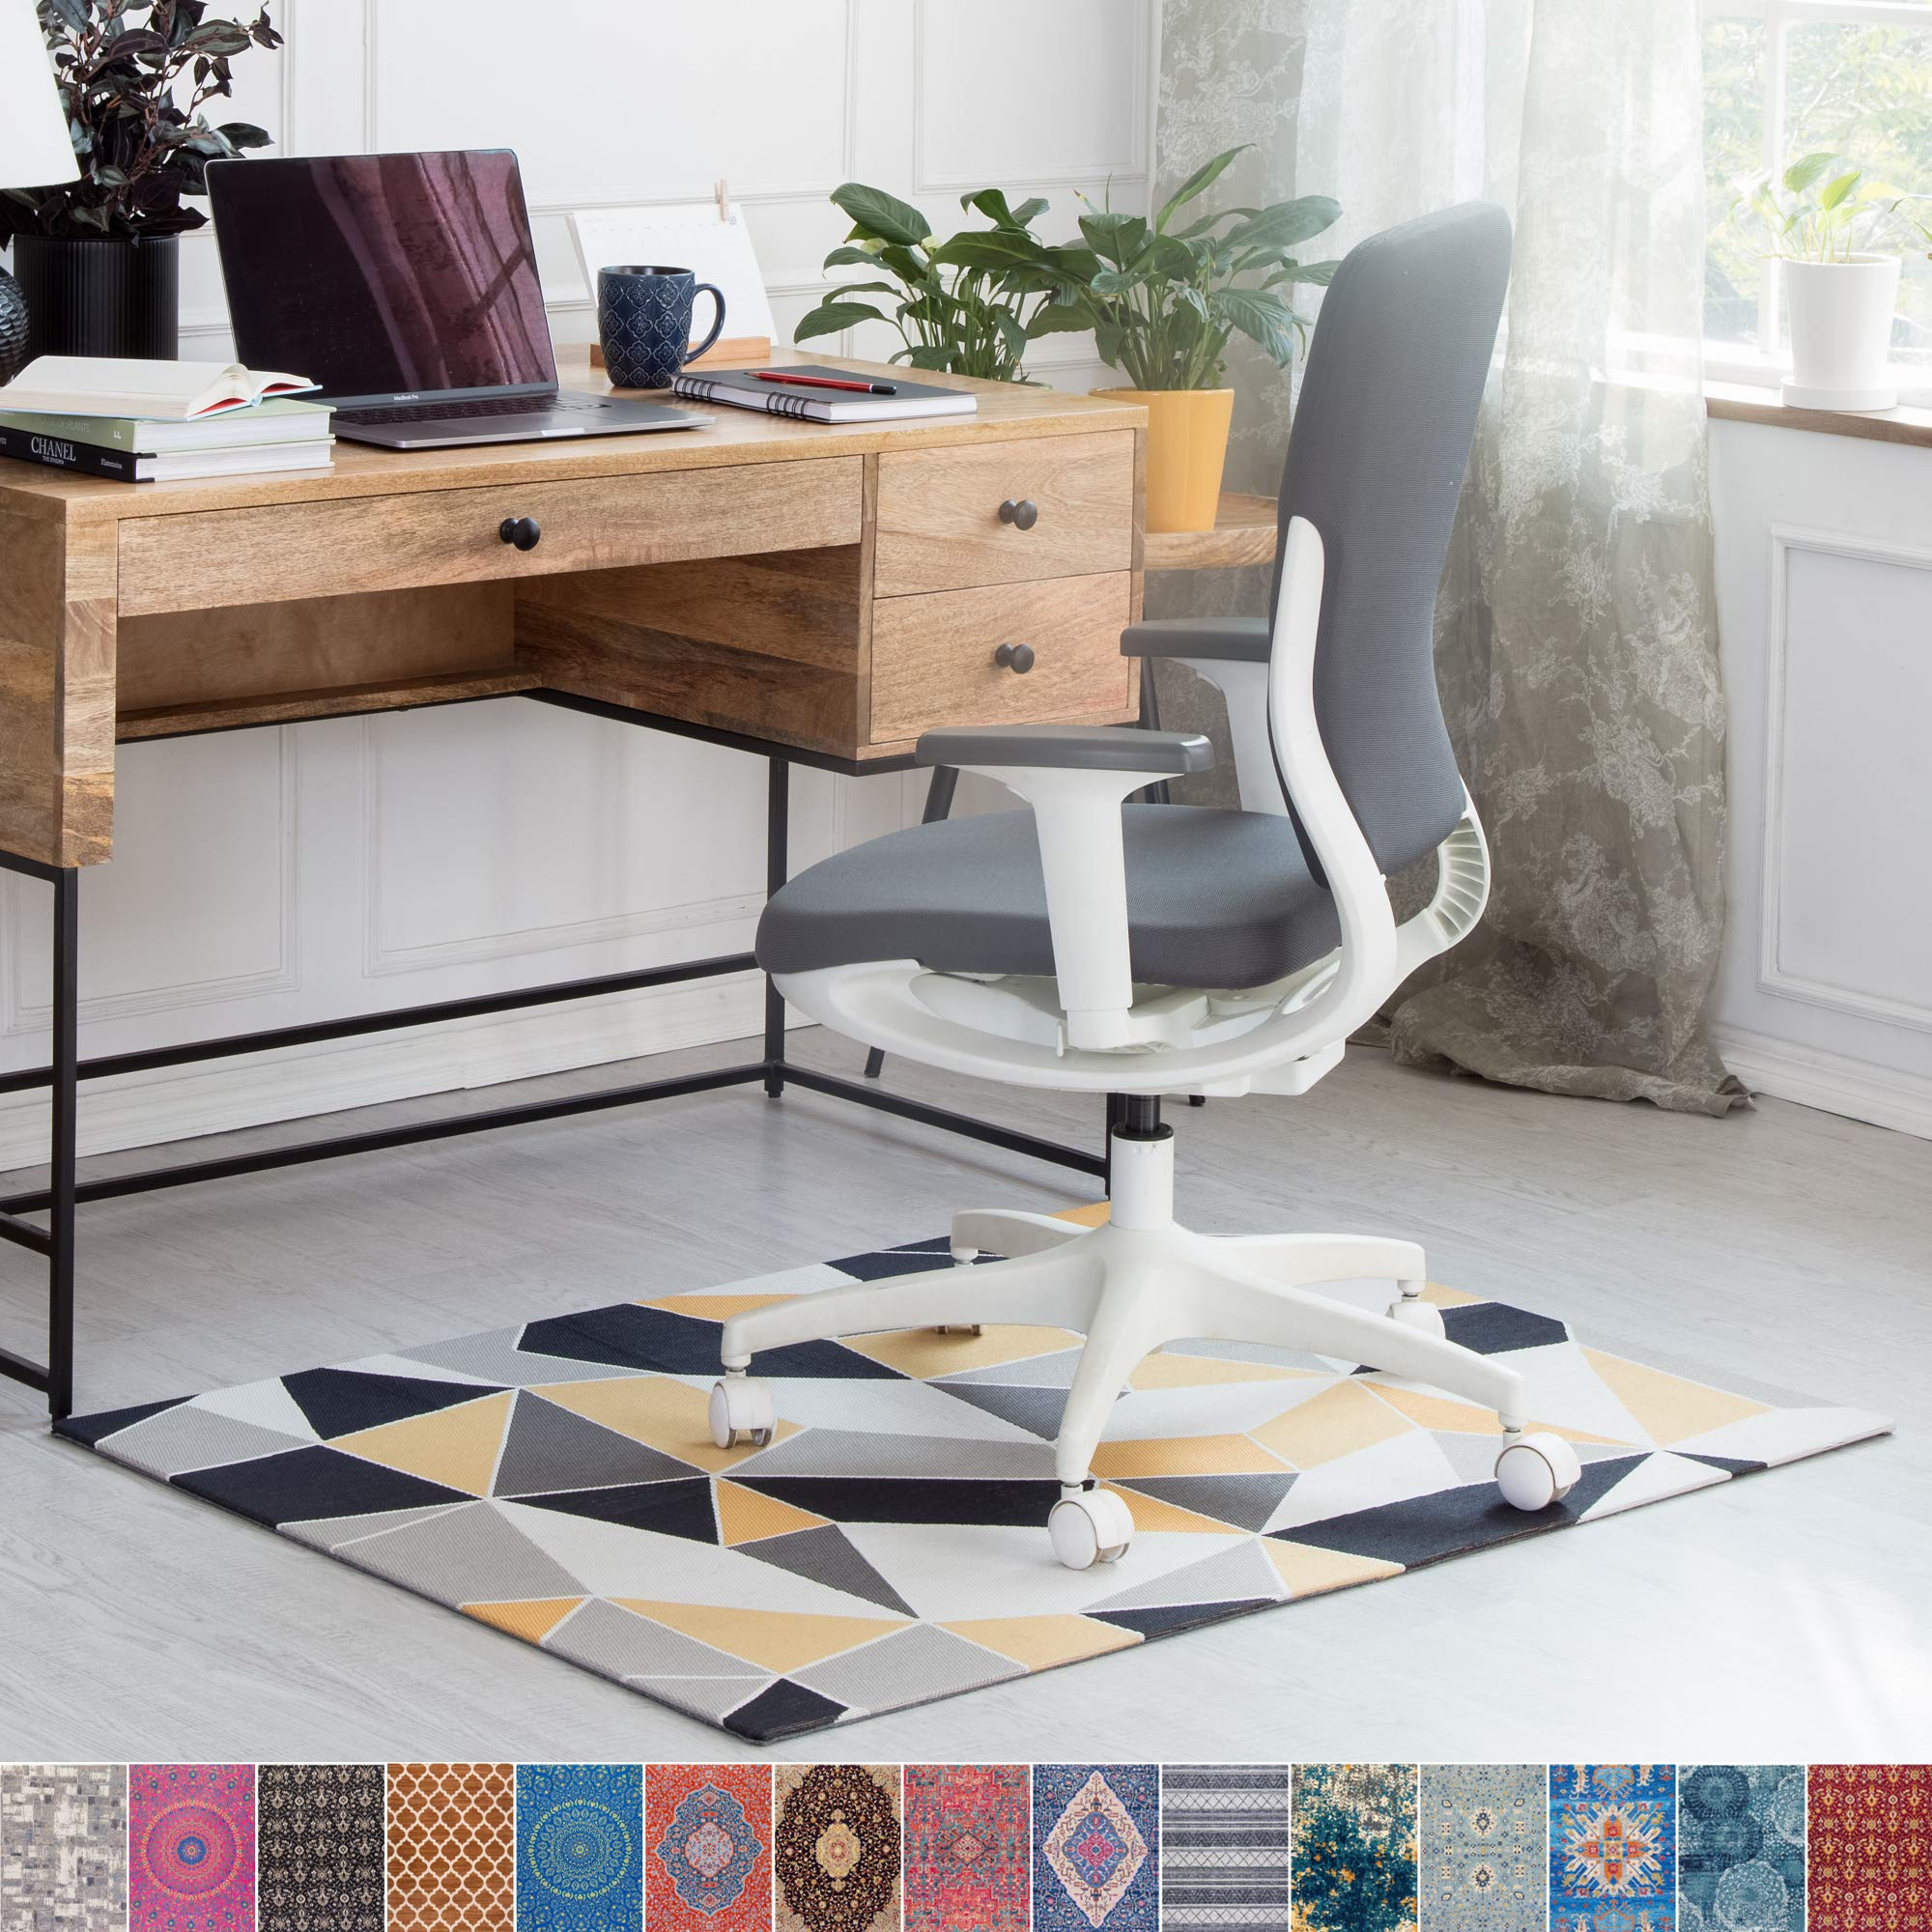 Anji Mountain Rug'd Chair Mat, 36 x 48-Inch, Abstract